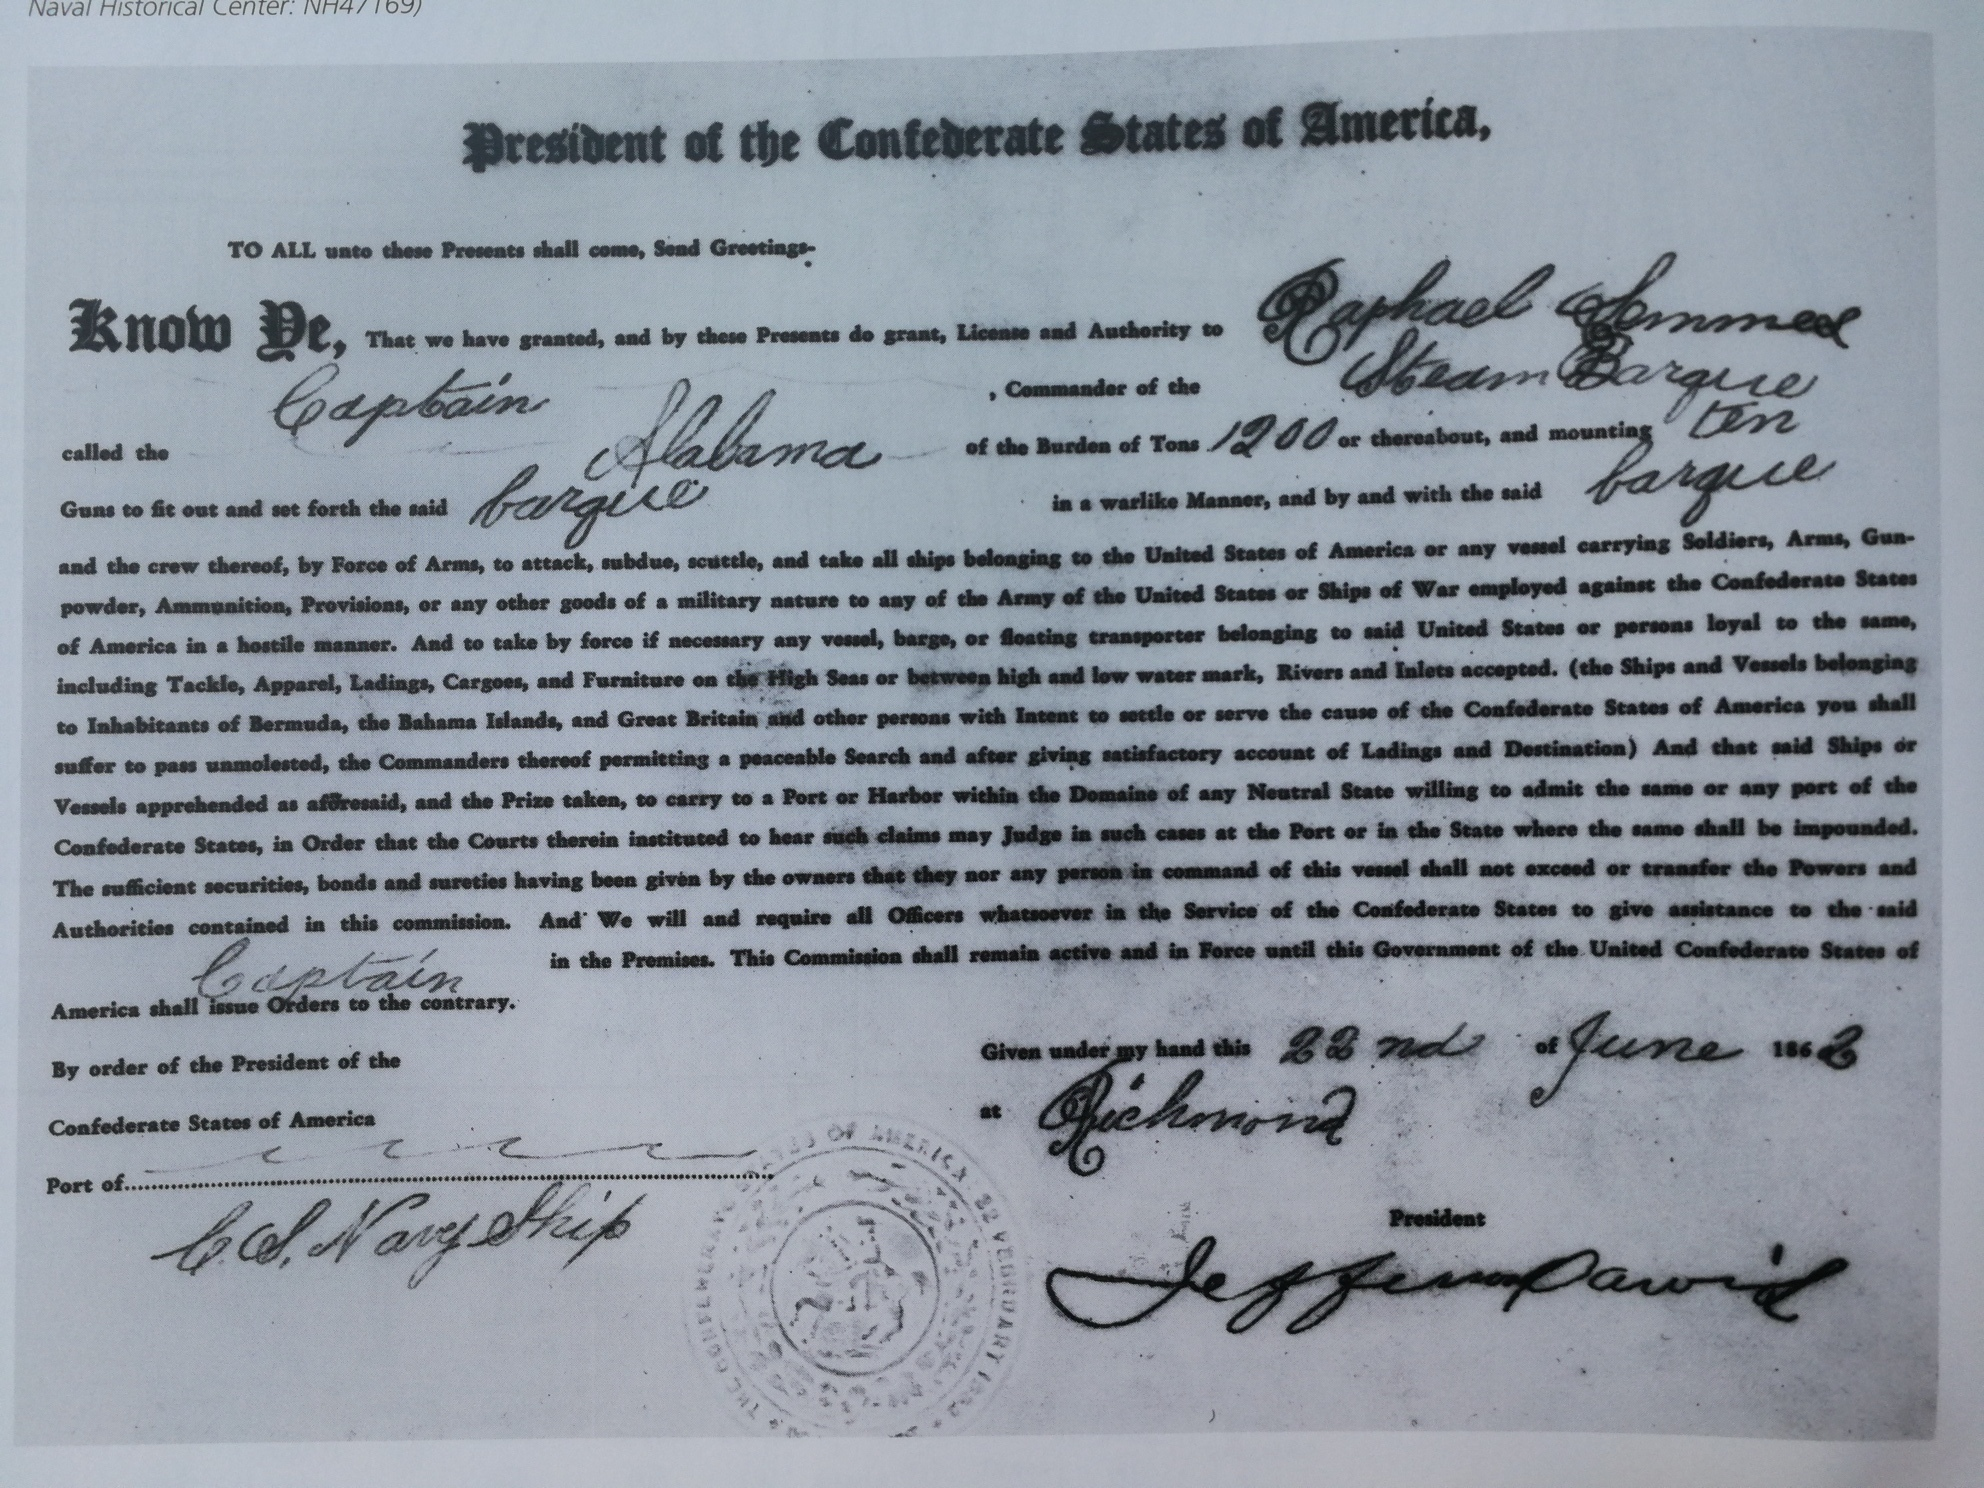 A copy of the authorisation granted to Captain Raphael Semmes to attack US ships, signed by Jefferson Davis, President of the Confederate States of America and dated 22 June 1862. (US Naval Historical Center: NH47169).